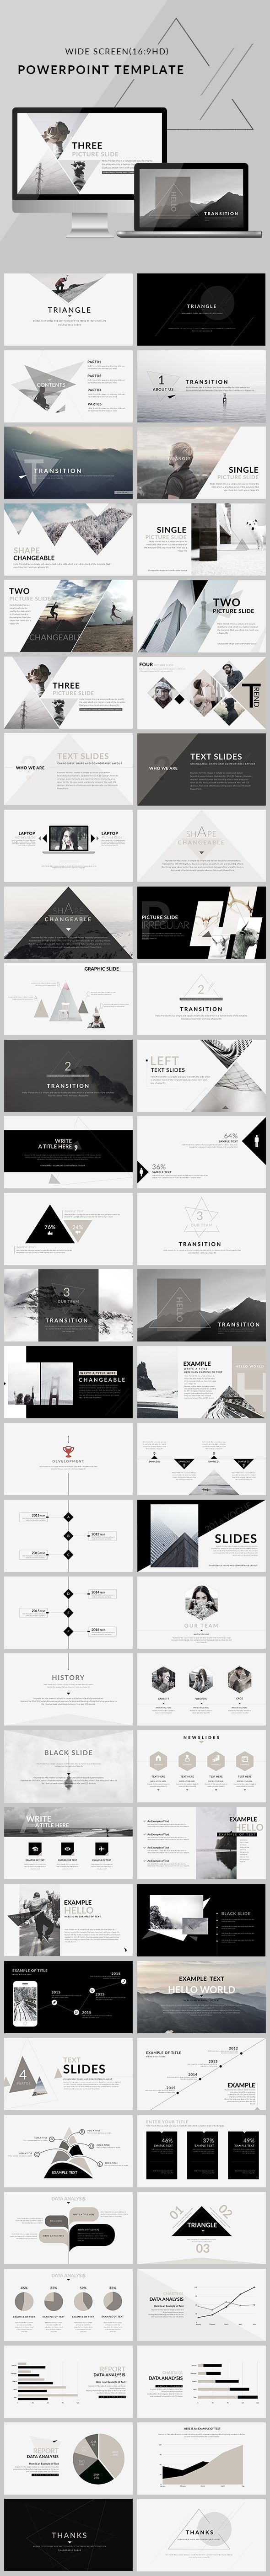 Triangle - Clean trend PowerPoint presentation